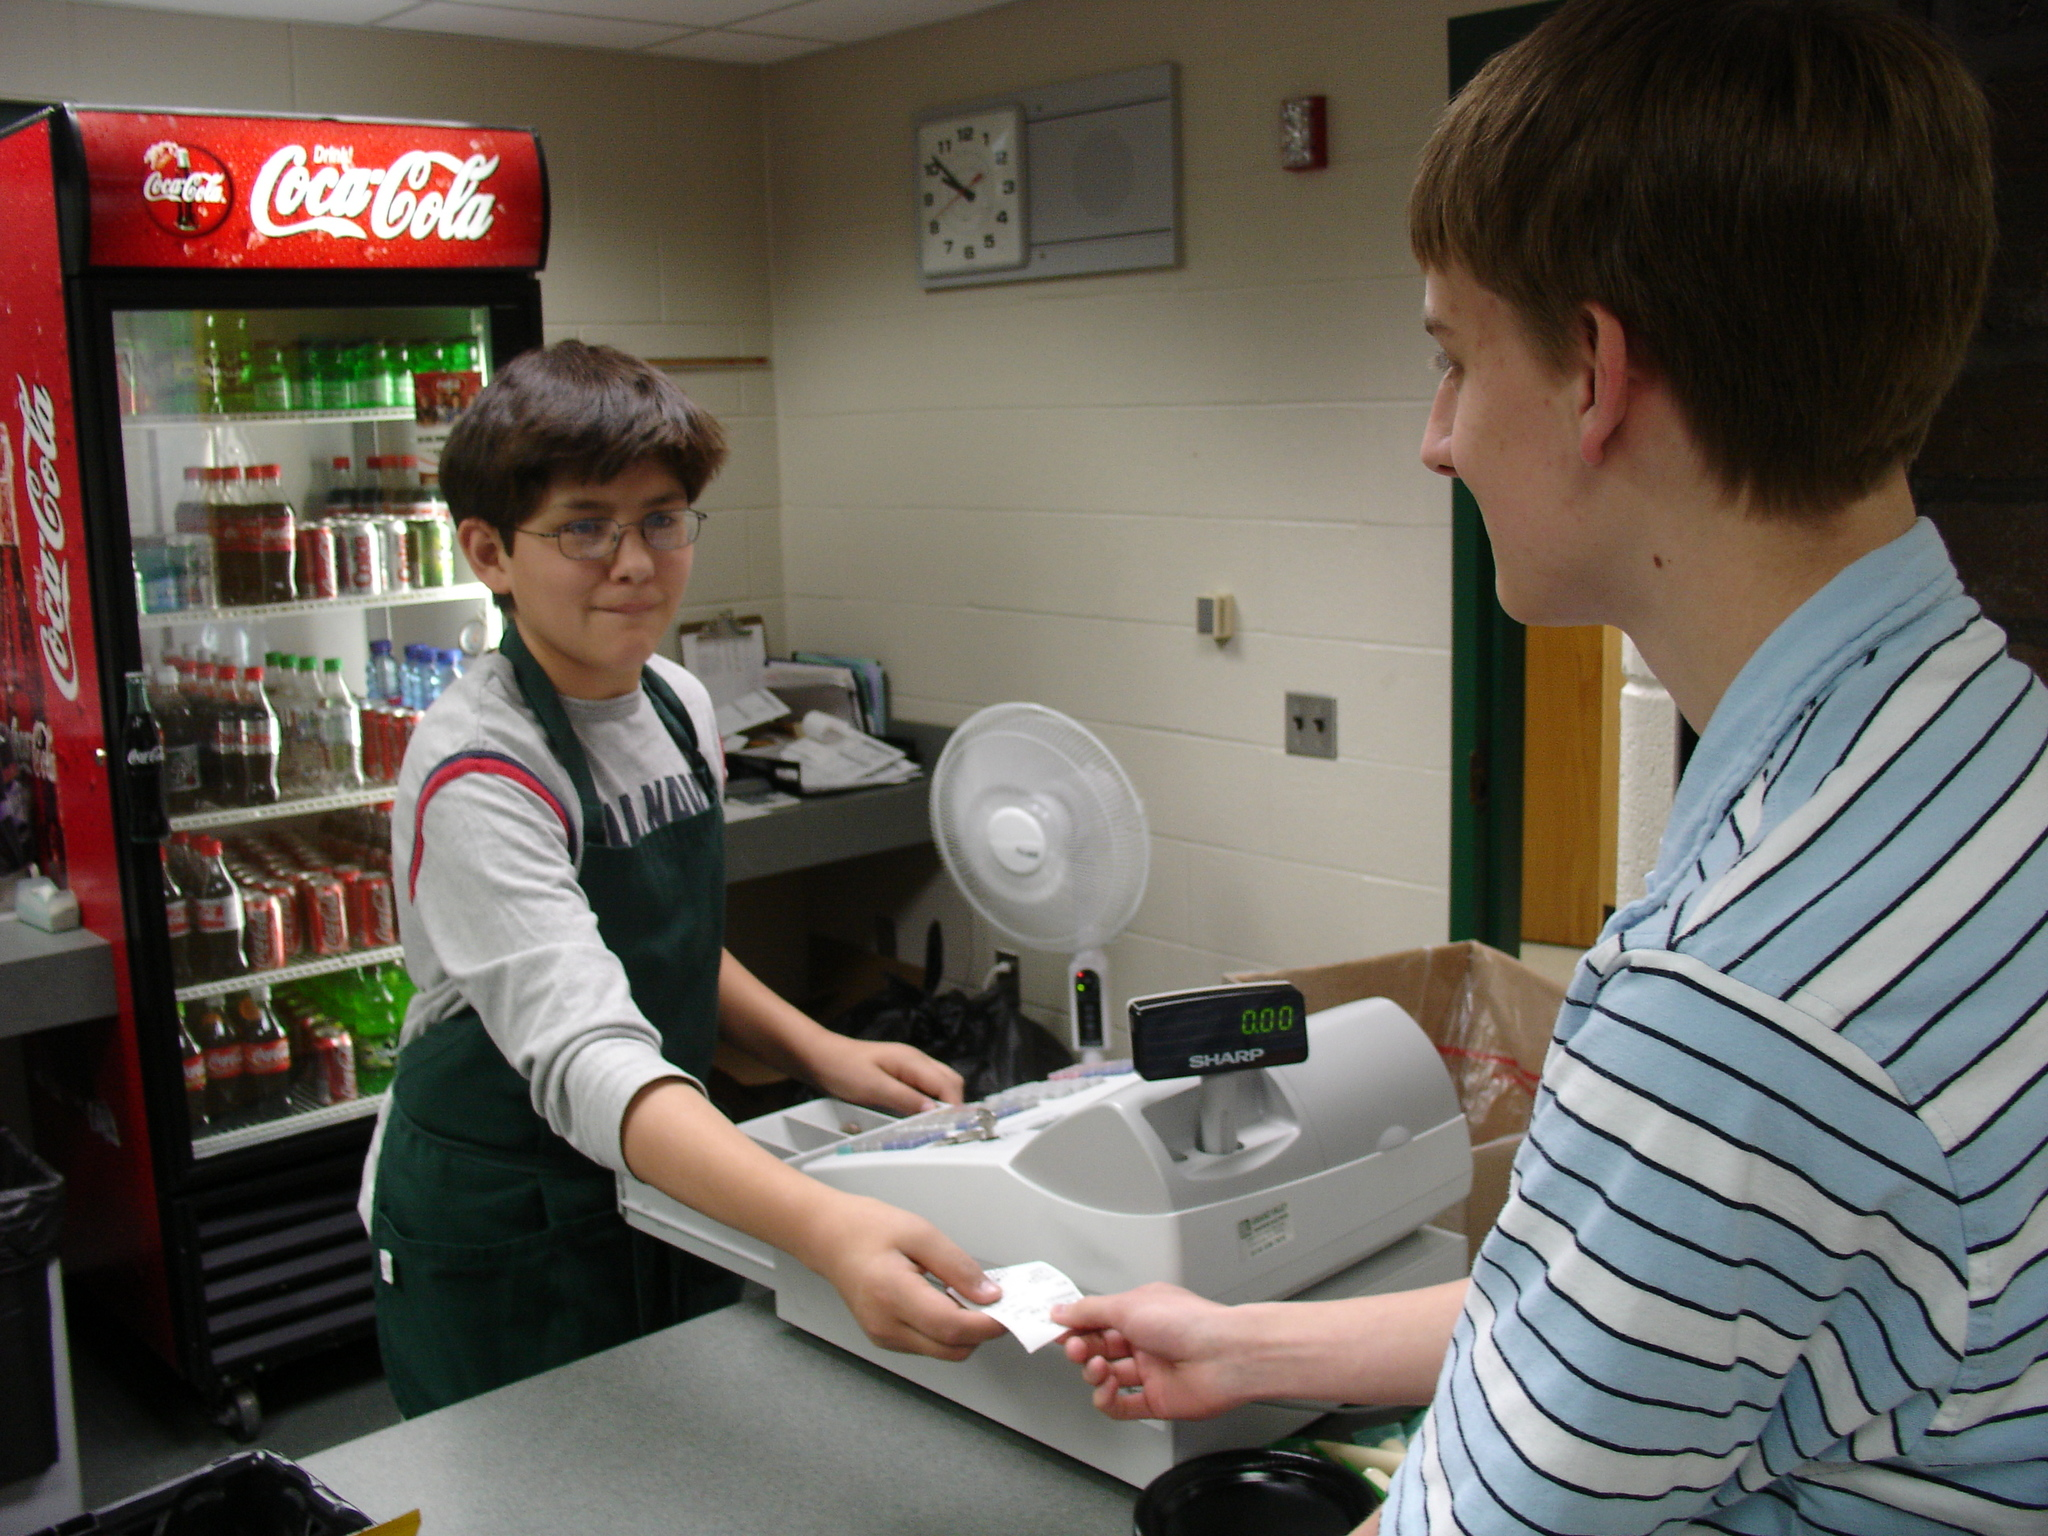 KTC Retail Marketing student serving student at snack counter